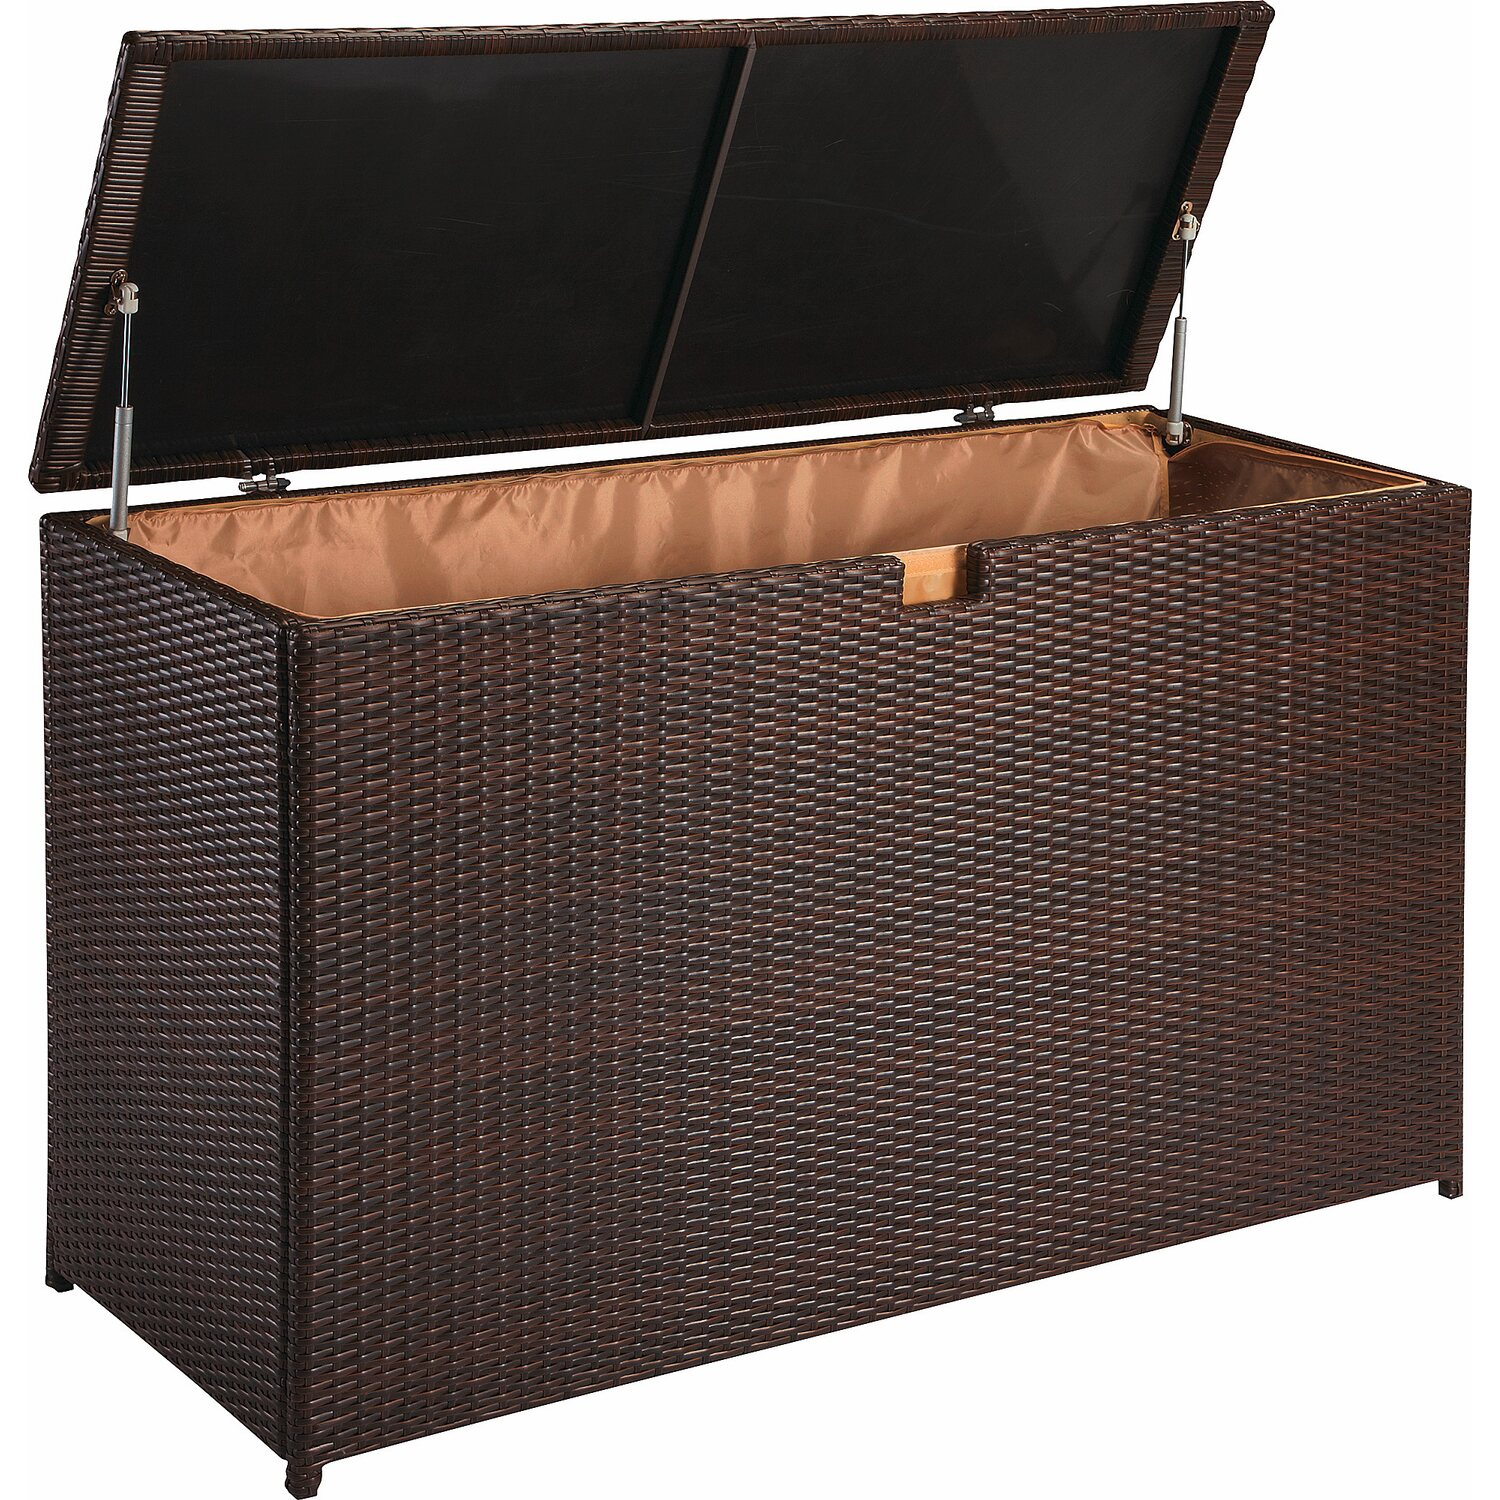 obi kissenbox davenport braun kaufen bei obi. Black Bedroom Furniture Sets. Home Design Ideas